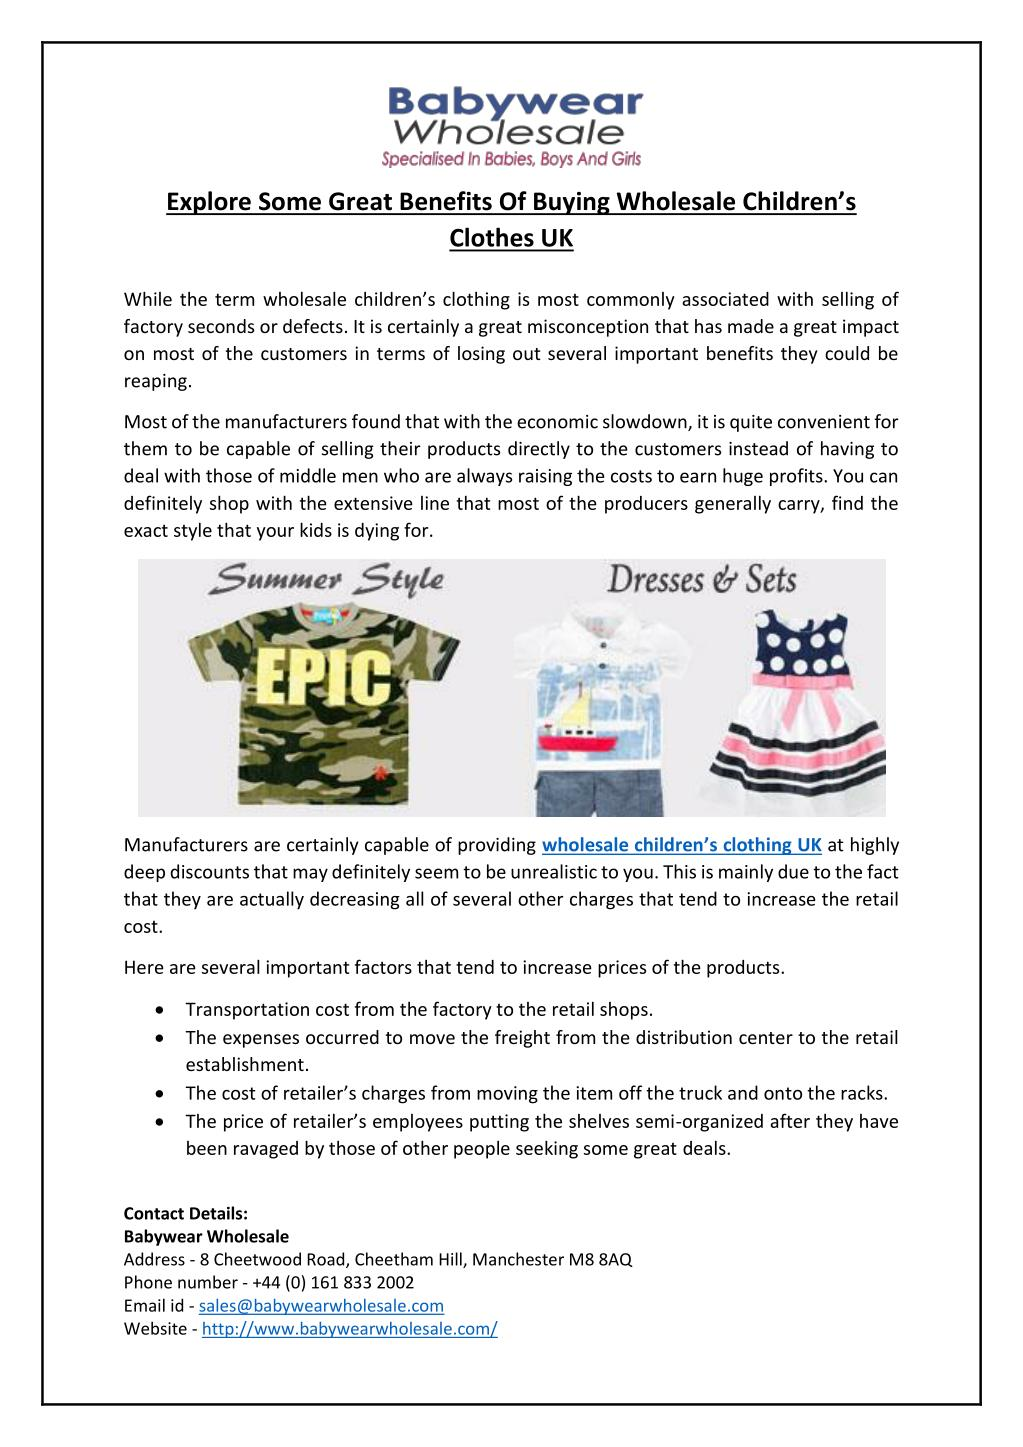 PPT - Explore Some Great Benefits Of Buying Wholesale